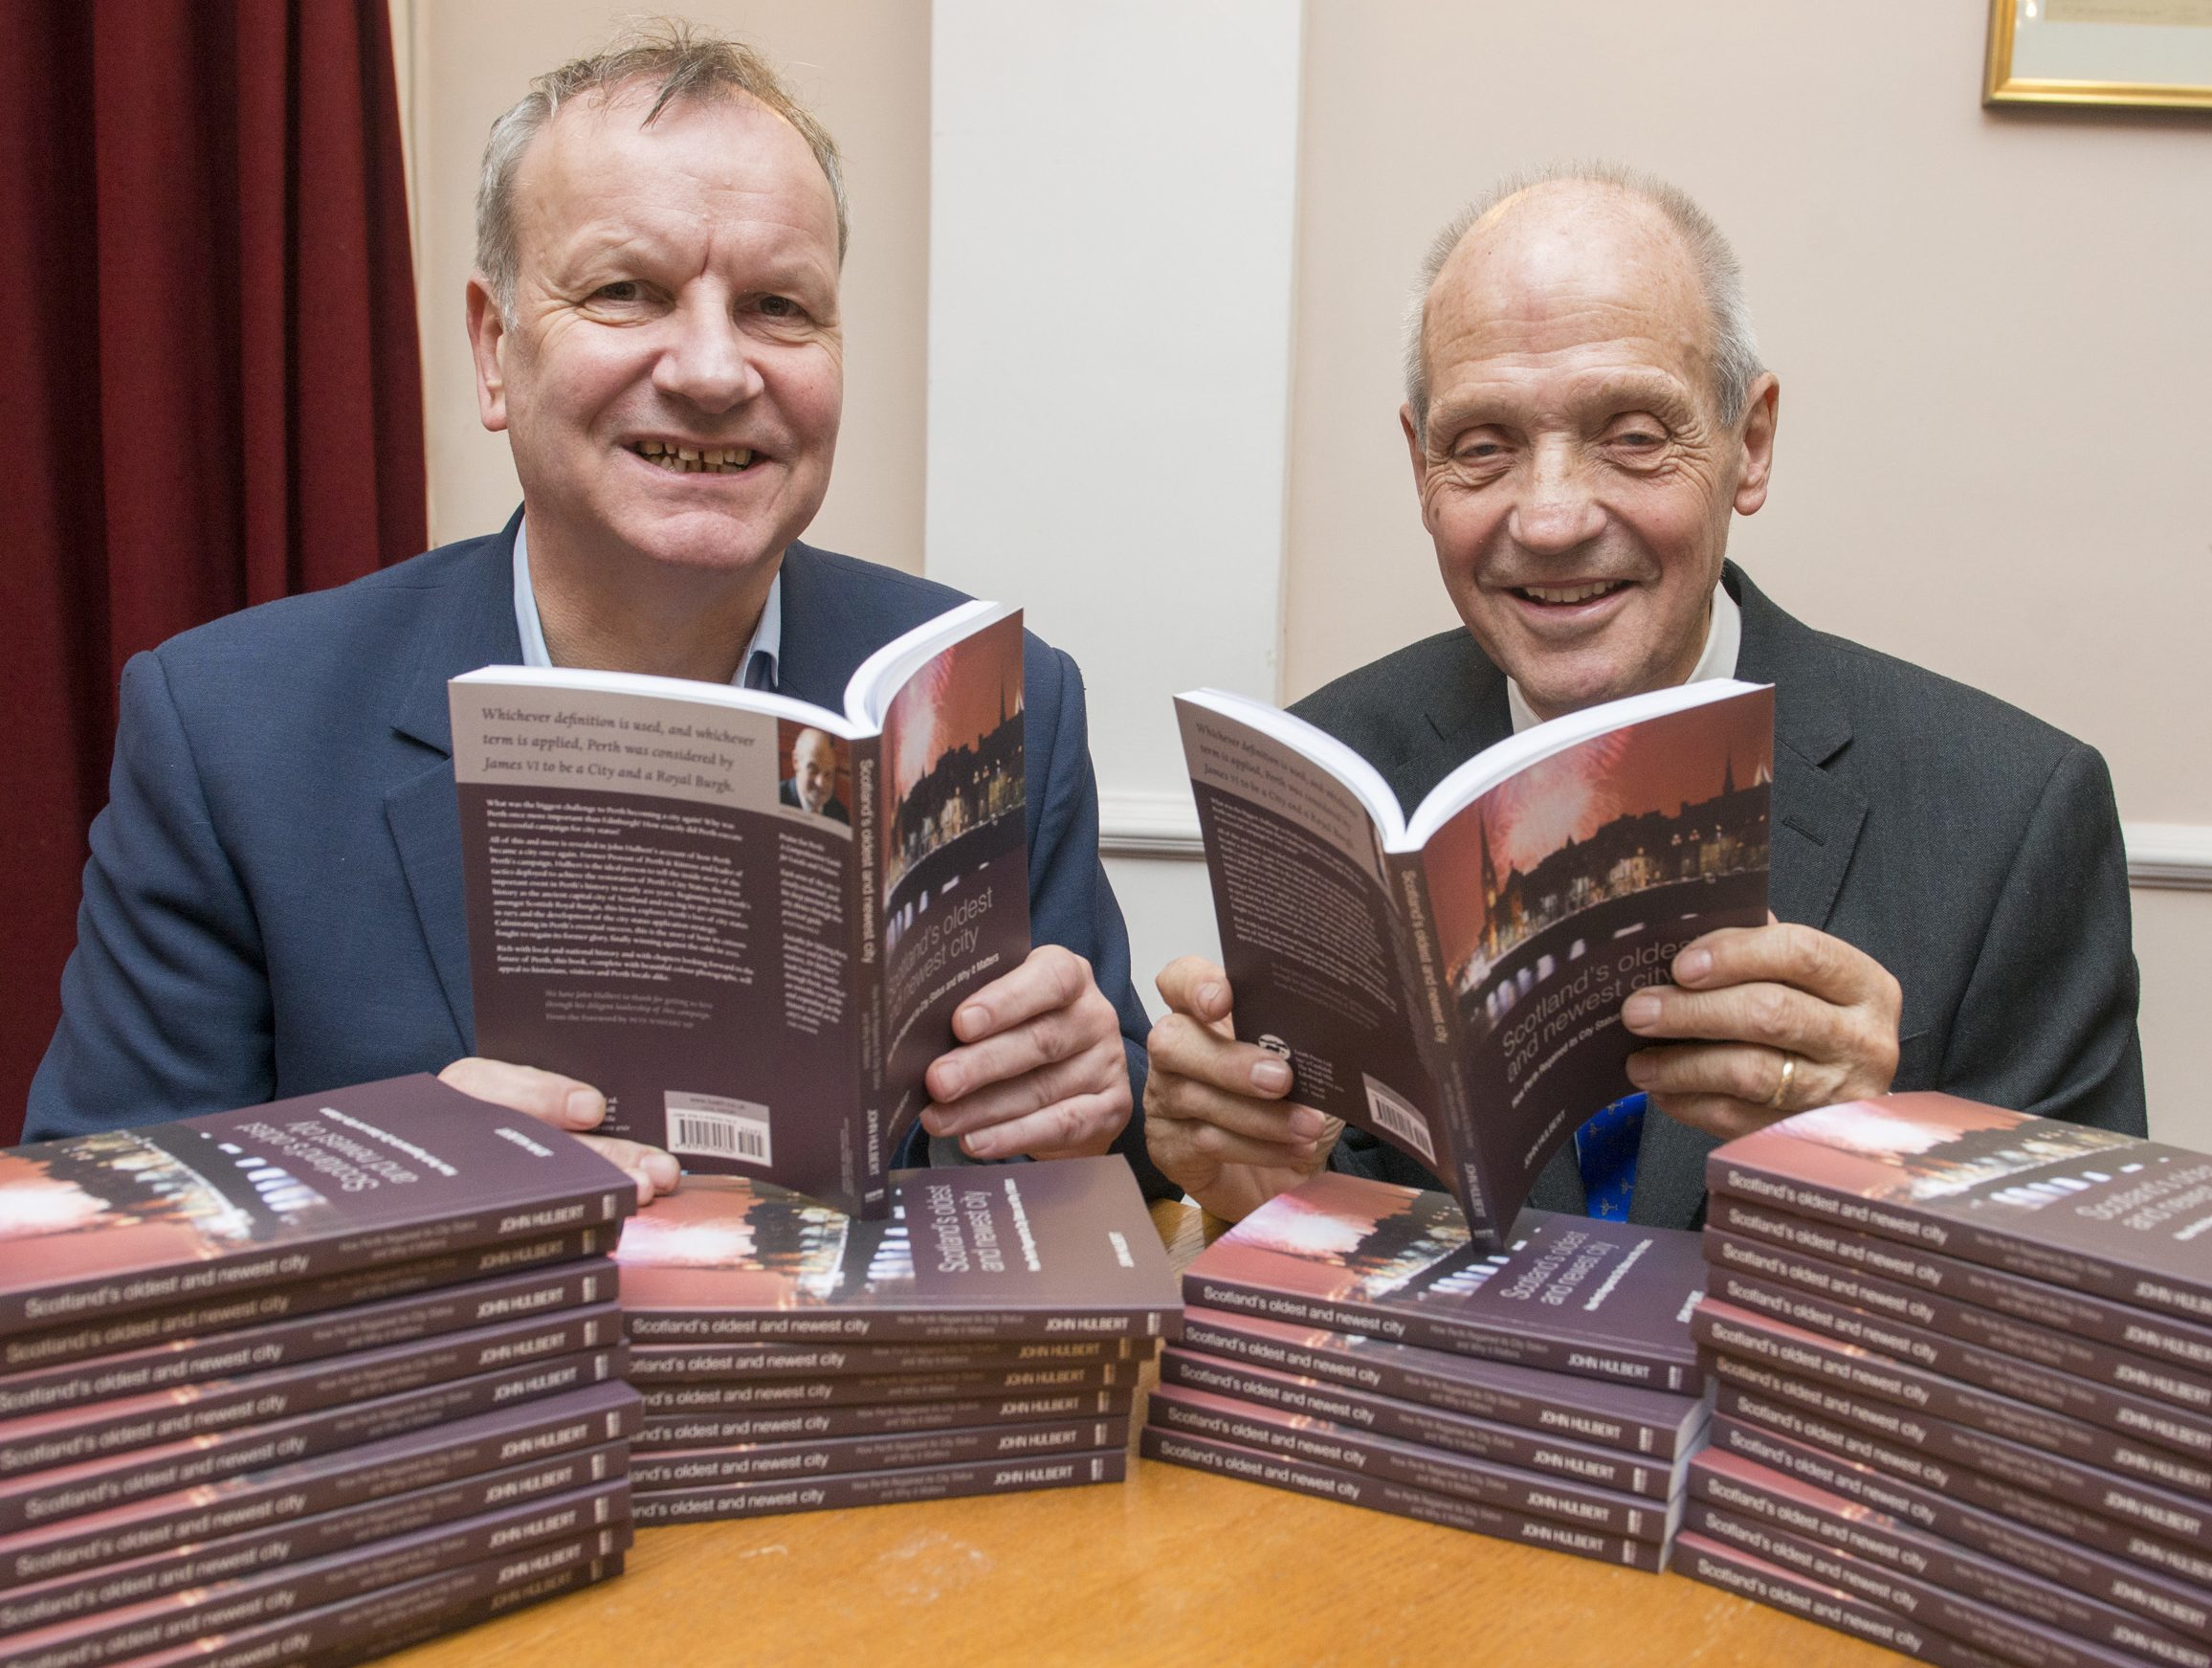 John Hulbert on the right is pictured with his new book and Pete Wishart MP.